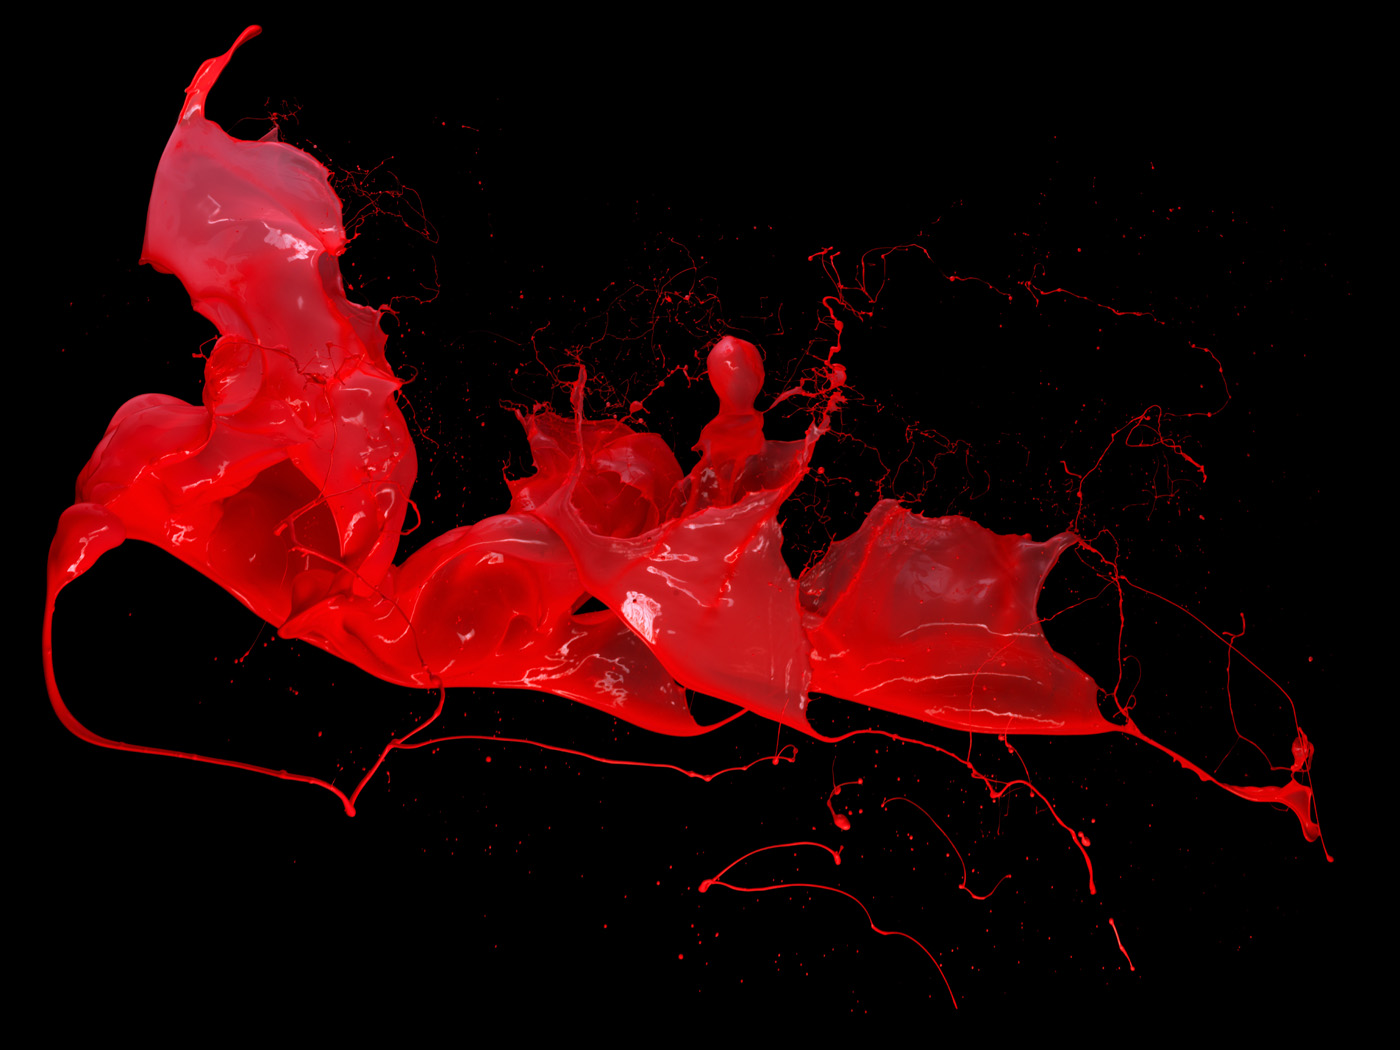 Splash of red liquid dynamic 9207